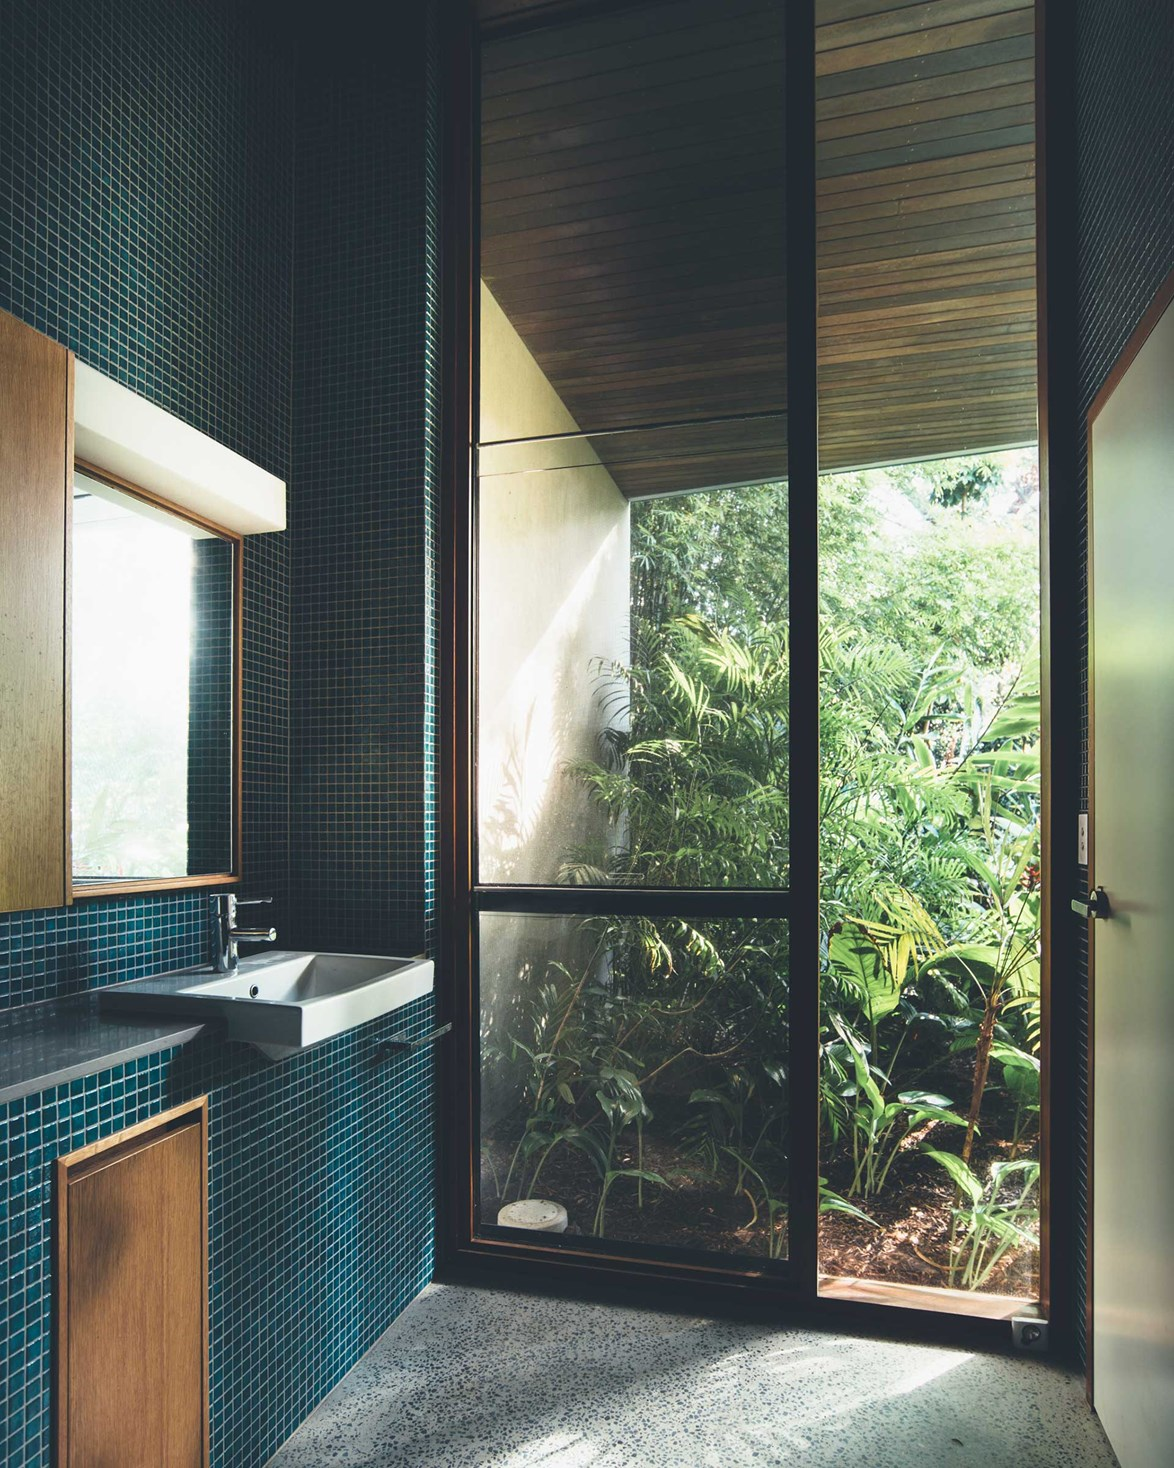 "The finishes used in this Japanese-inspired bathroom were informed by the owner's desire for a [low-maintenance, durable beach house](https://www.homestolove.com.au/beach-house-noosa-queensland-little-cove-18846|target=""_blank""). A hardy terrazzo floor fit the bill perfectly. *Photo: Teeland Architects / Jared Fowler / Story: Home Life*"